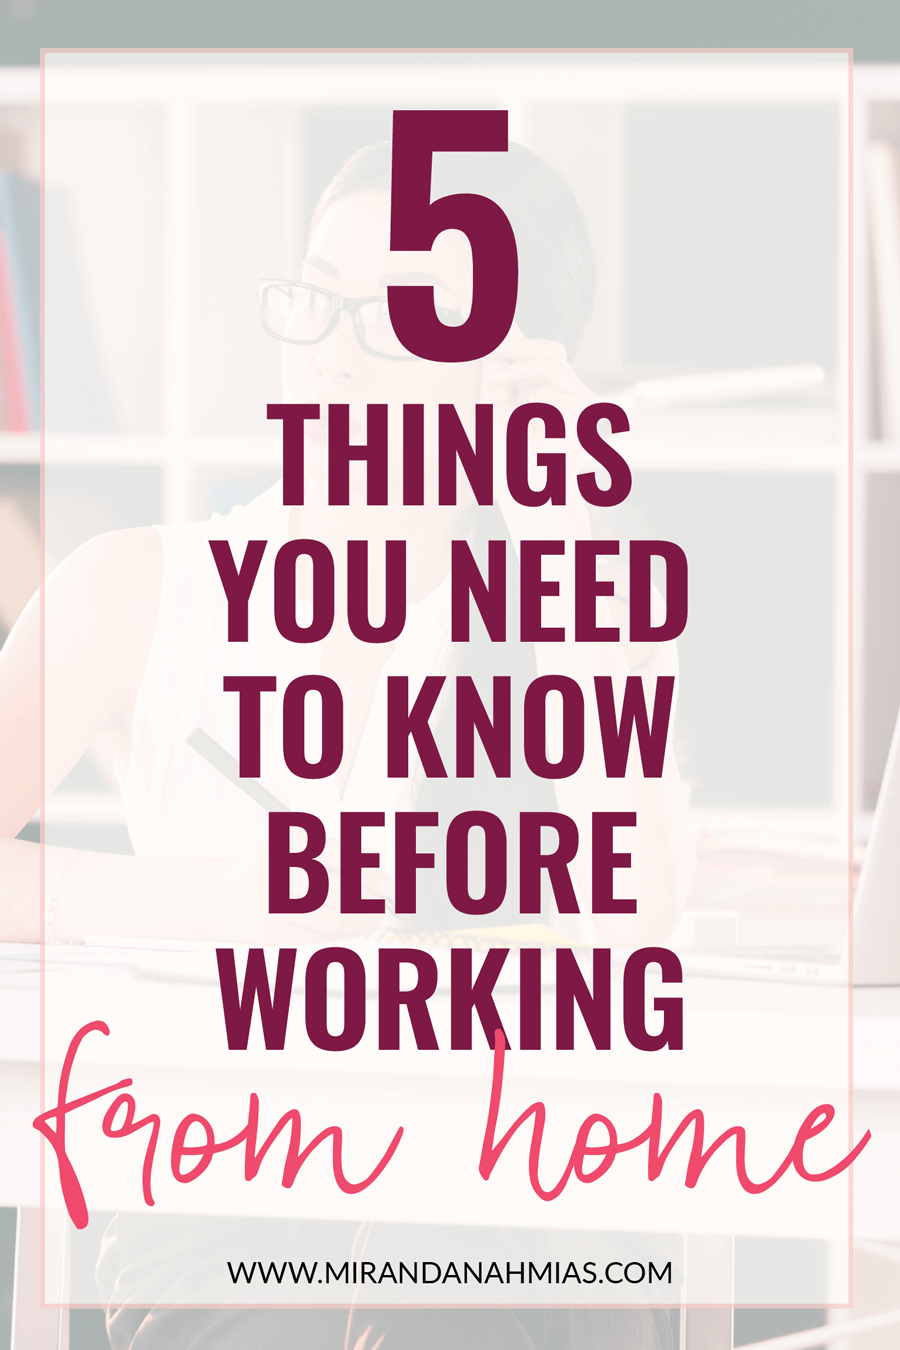 Thinking about working from home? Here are 5 things you should think about before making the leap. | Miranda Nahmias & Co. — Score New Clients and Explode Your Business with Systemized Marketing